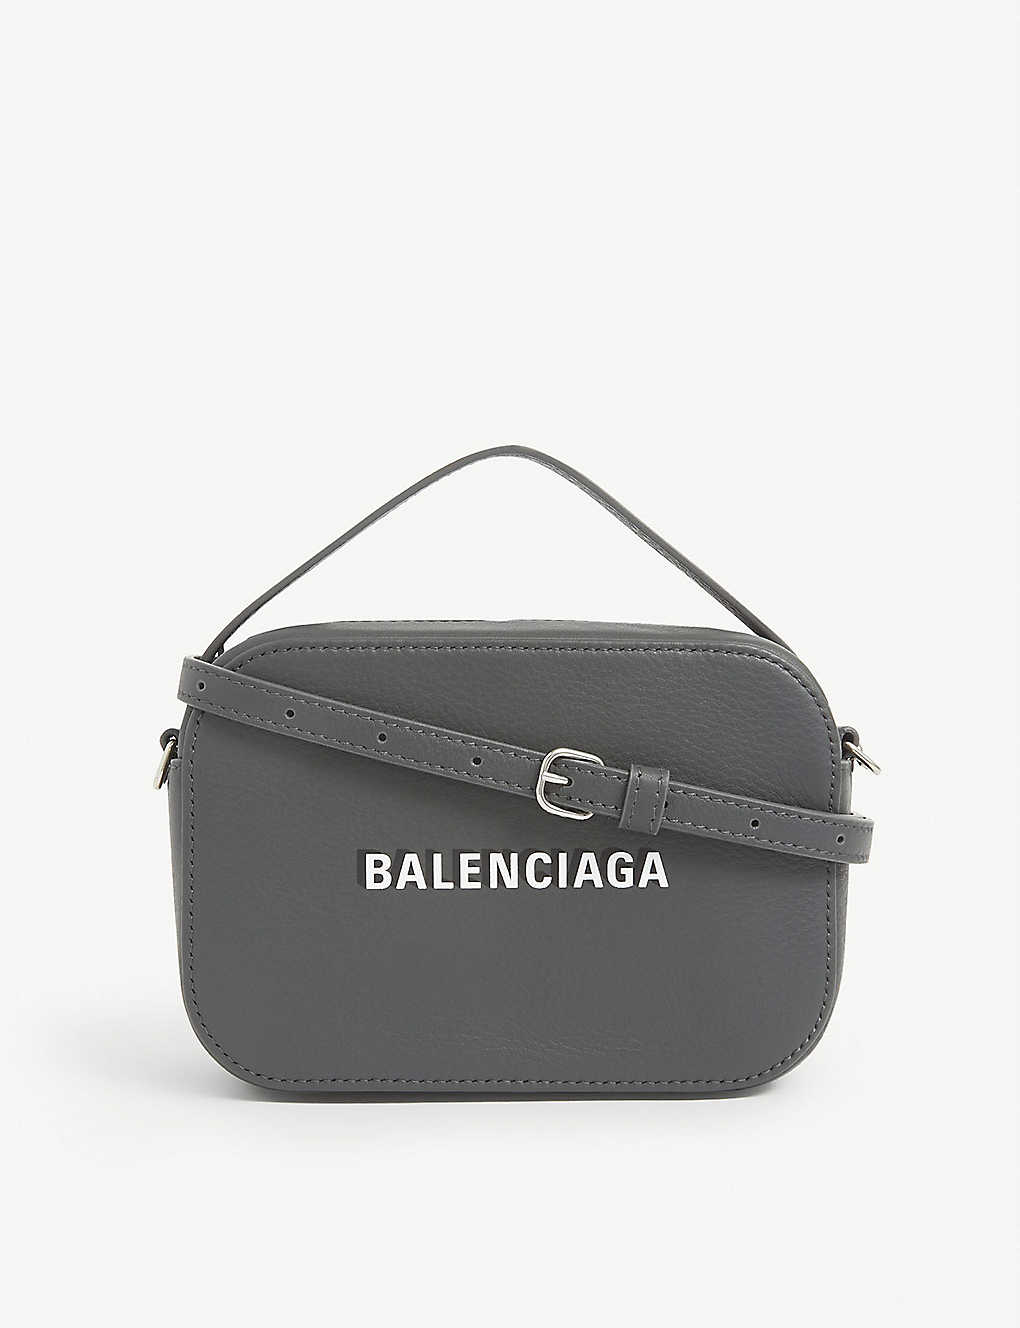 BALENCIAGA: Everyday leather camera bag